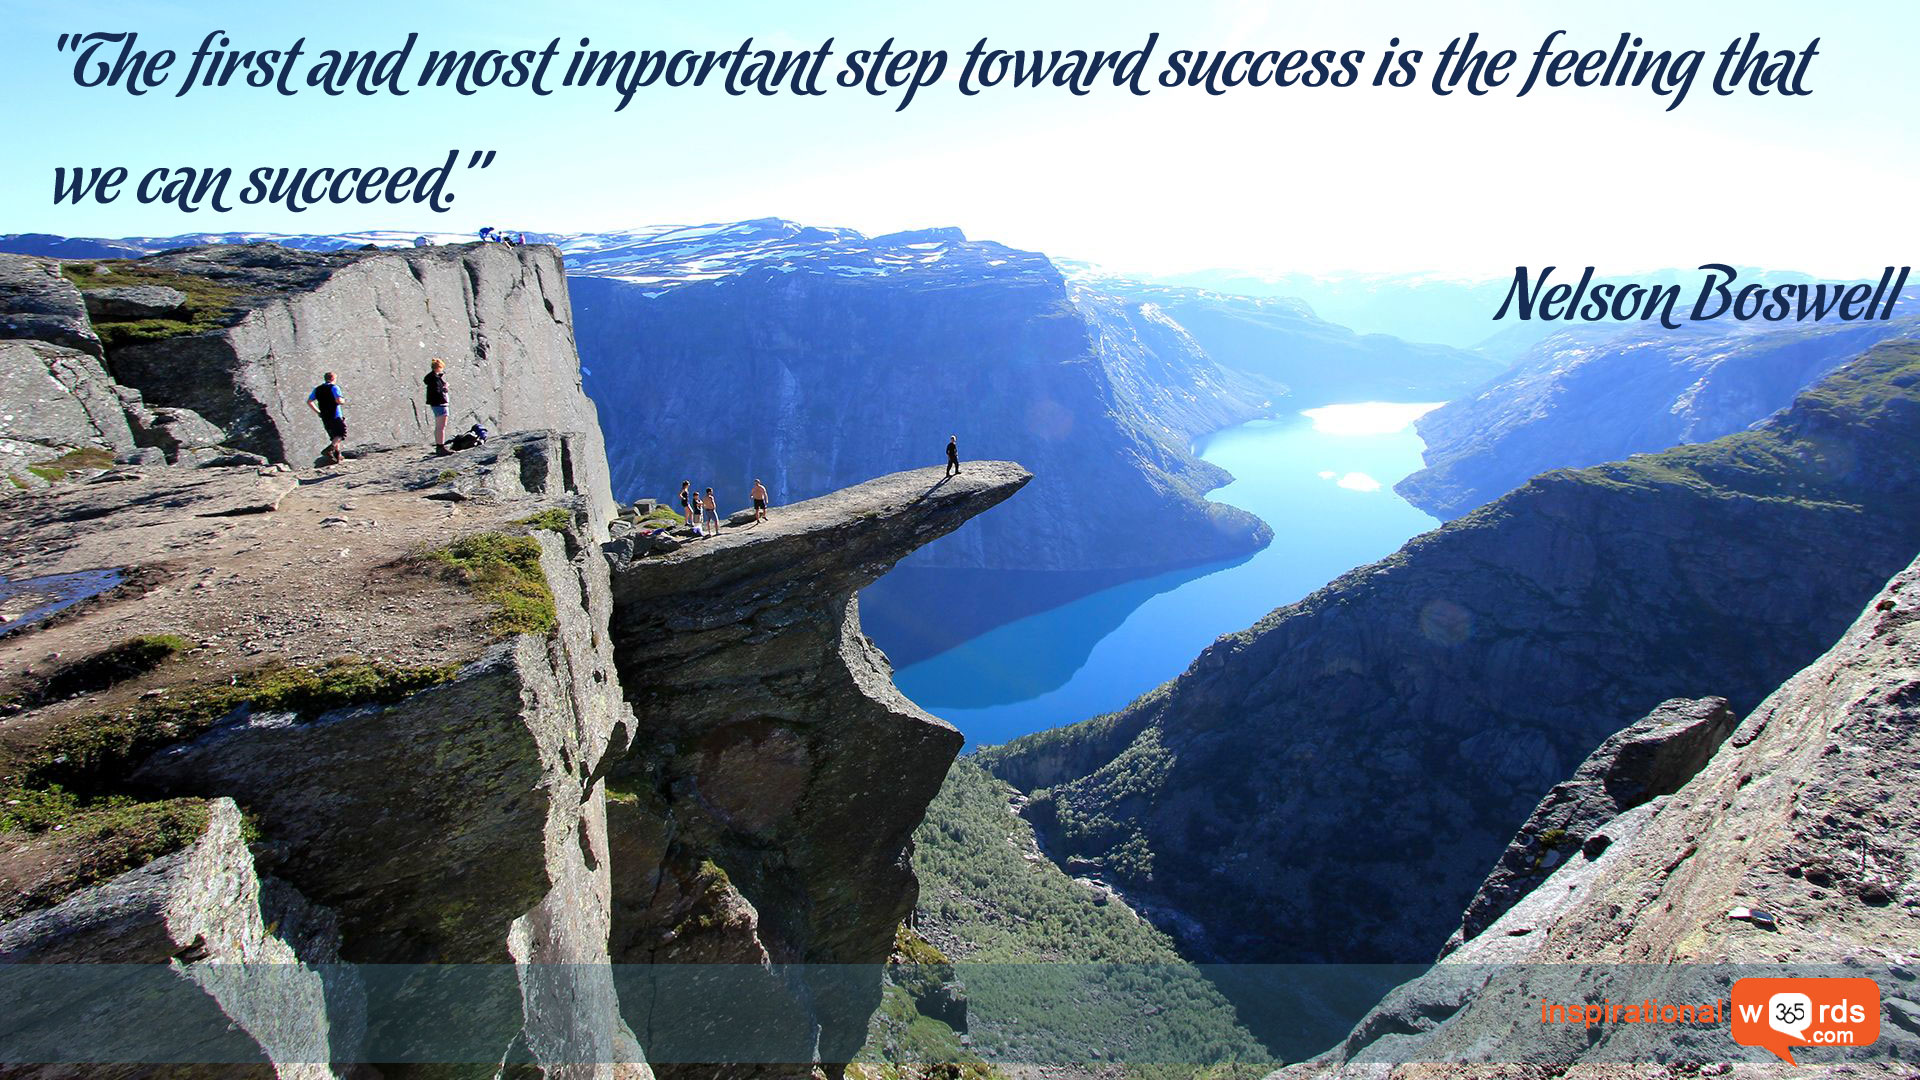 Inspirational Wallpaper Quote by Nelson Boswell